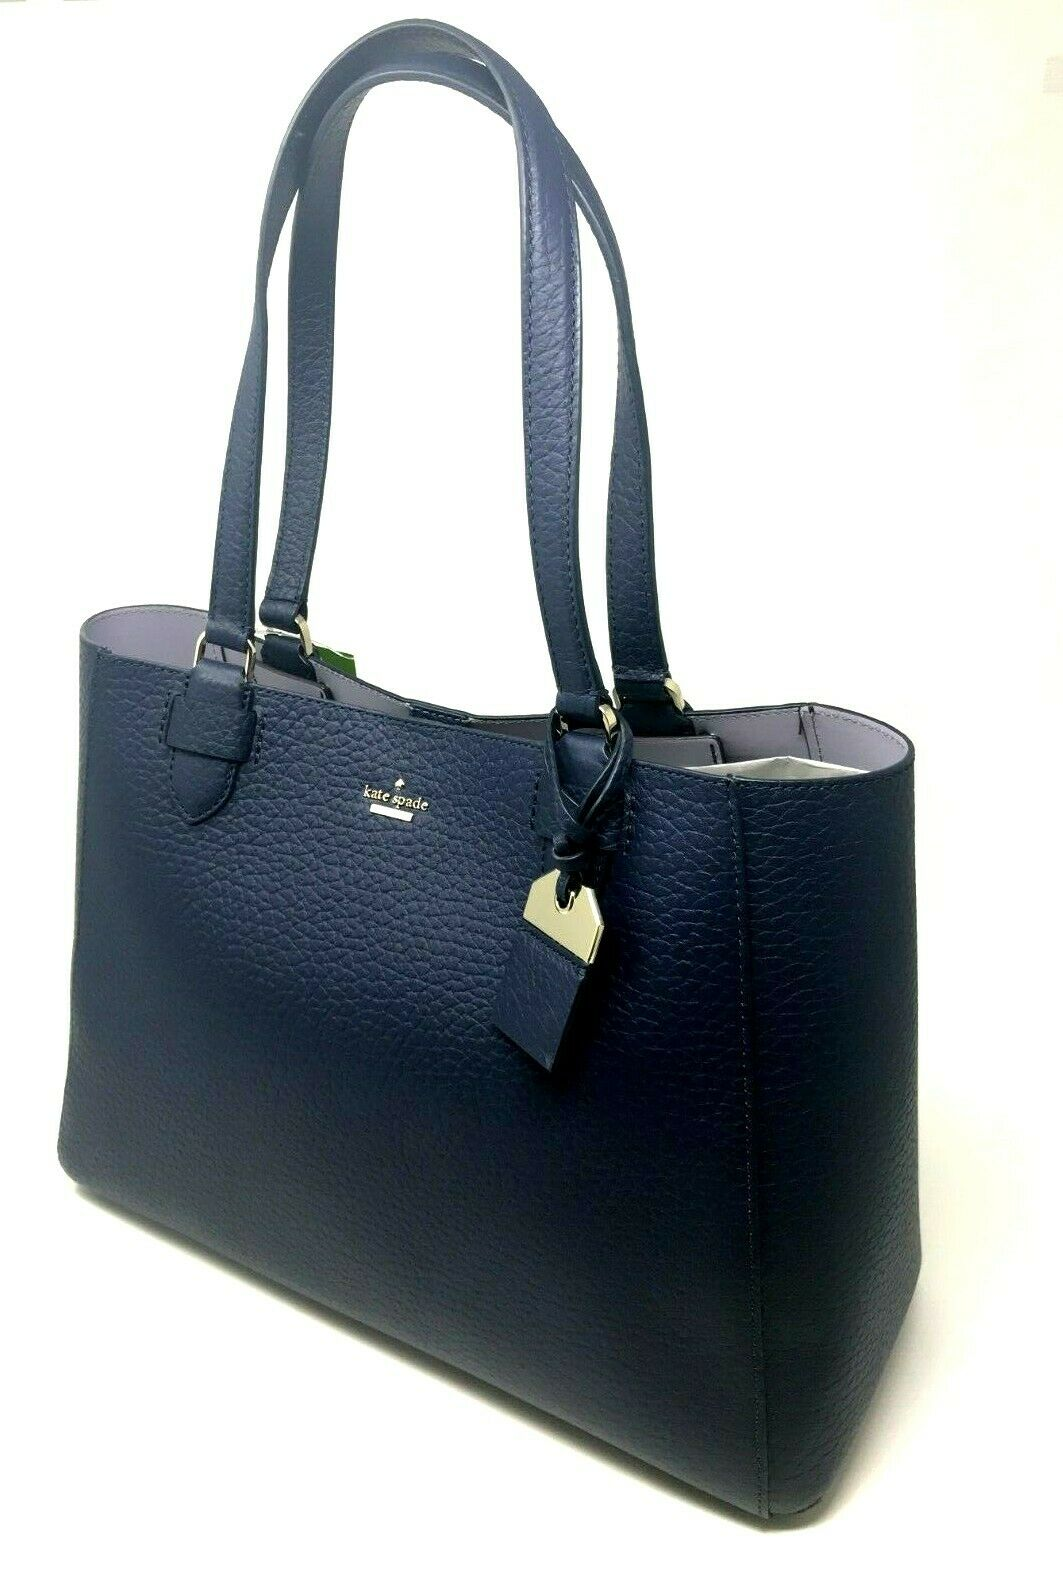 Kate Spade Carter Tyler Tote Blaze Blue Navy Leather Tote Handbag WKRU5837 $378